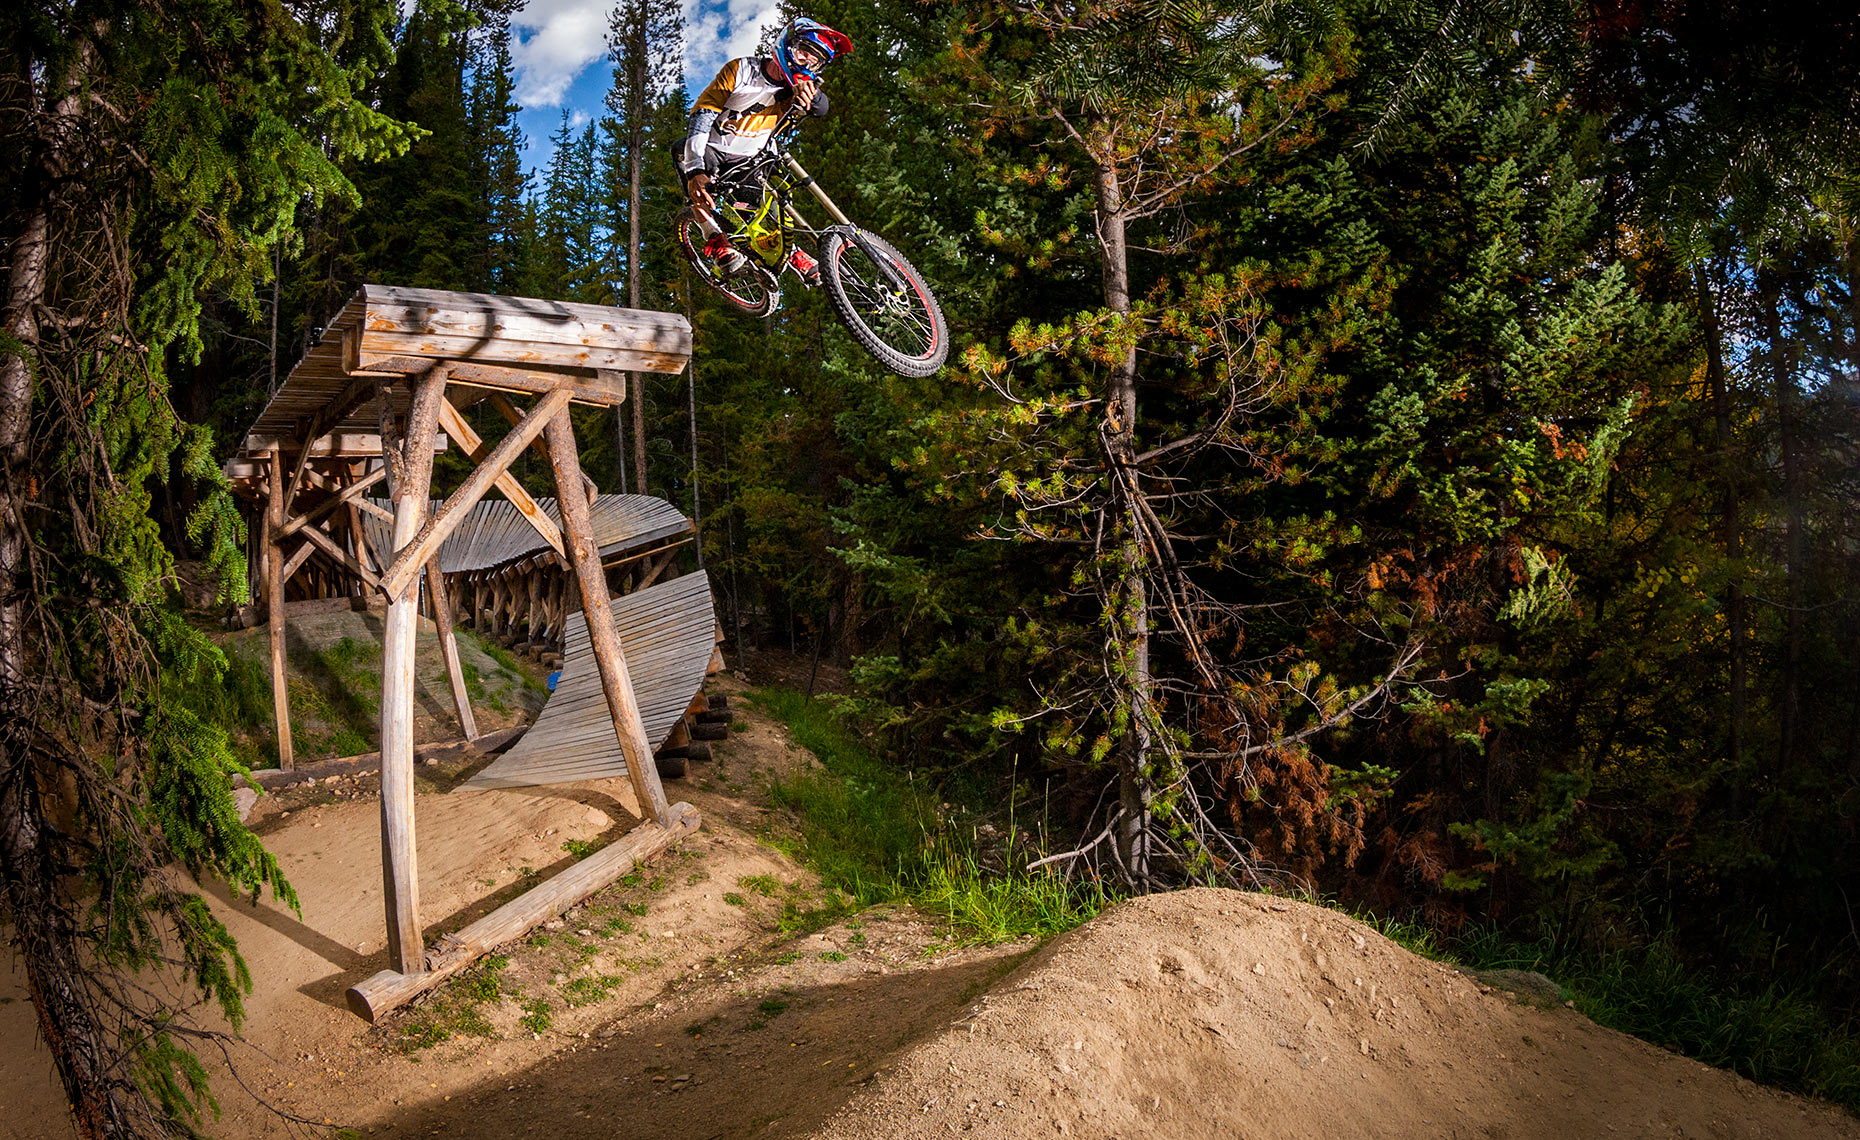 Paul_Weston_Trestle_Bike_Park_Colorado_Chris_Wellhausen_02